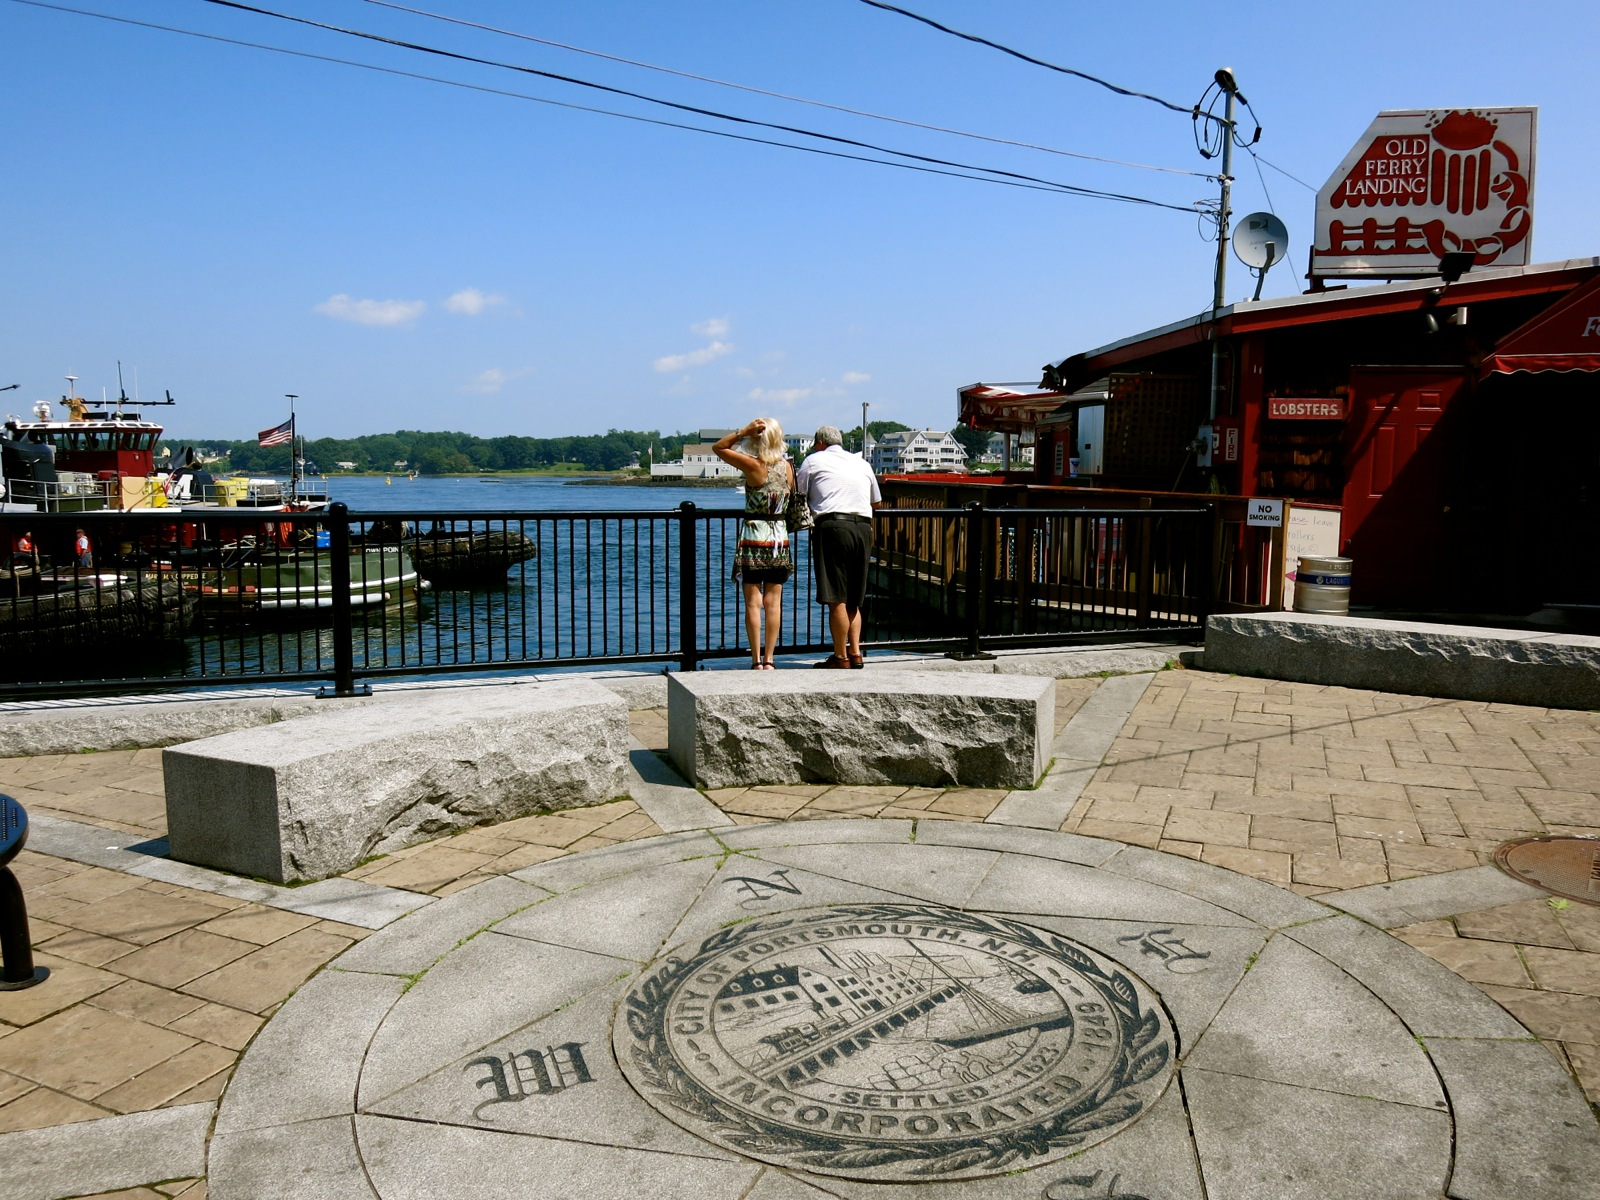 Portsmouth Nh Shopping >> Portsmouth NH: Seaport, Shopping and Full-On Culinary Scene